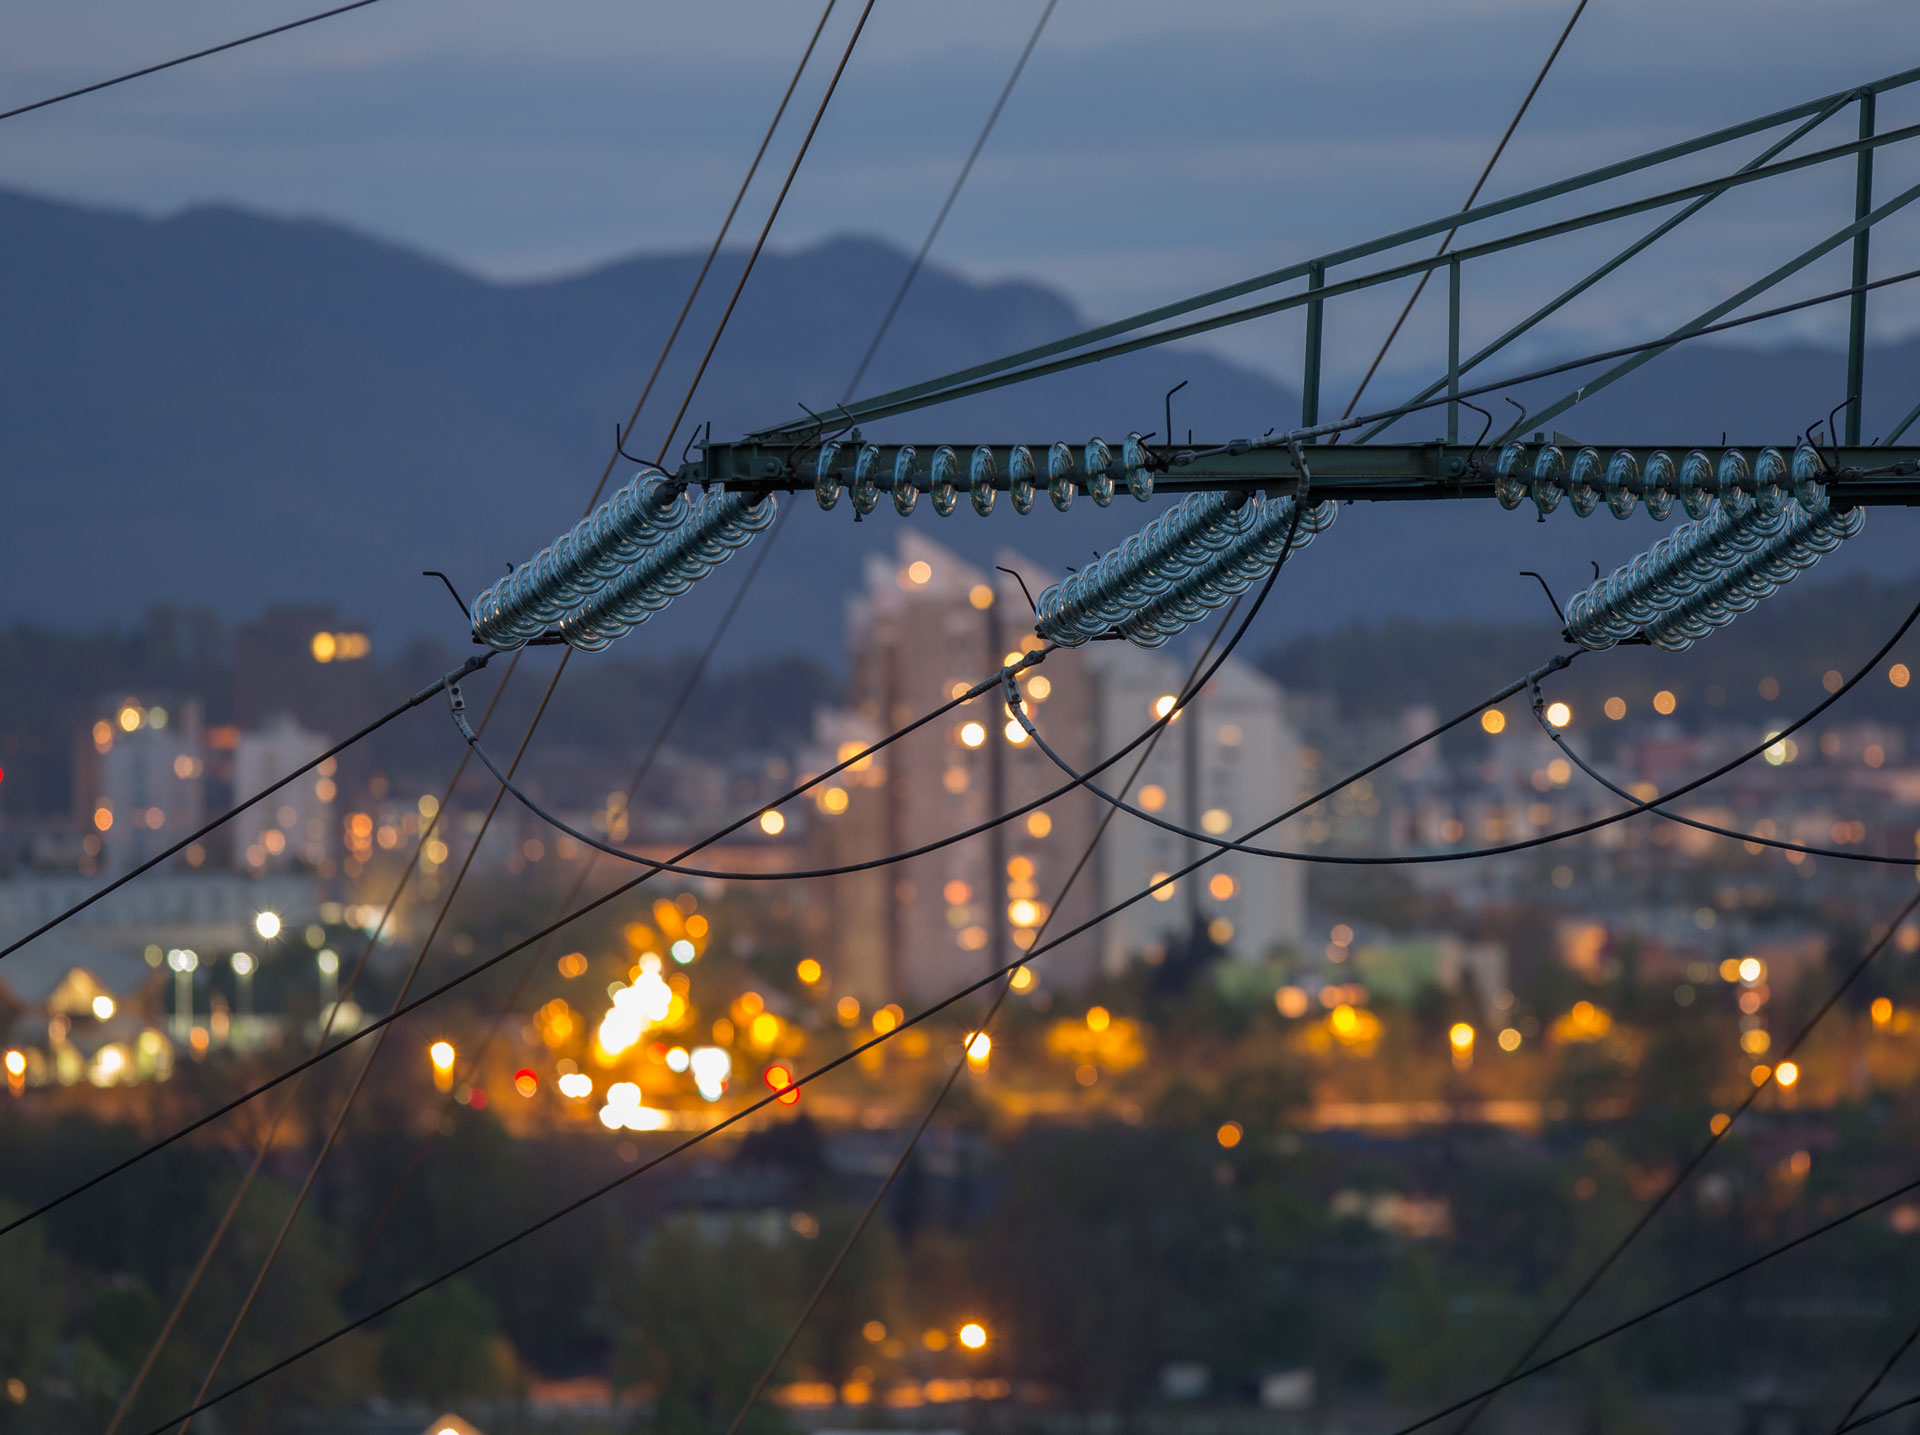 South America power cut unlikely to be cyberattack – but attacks on power grids are rising